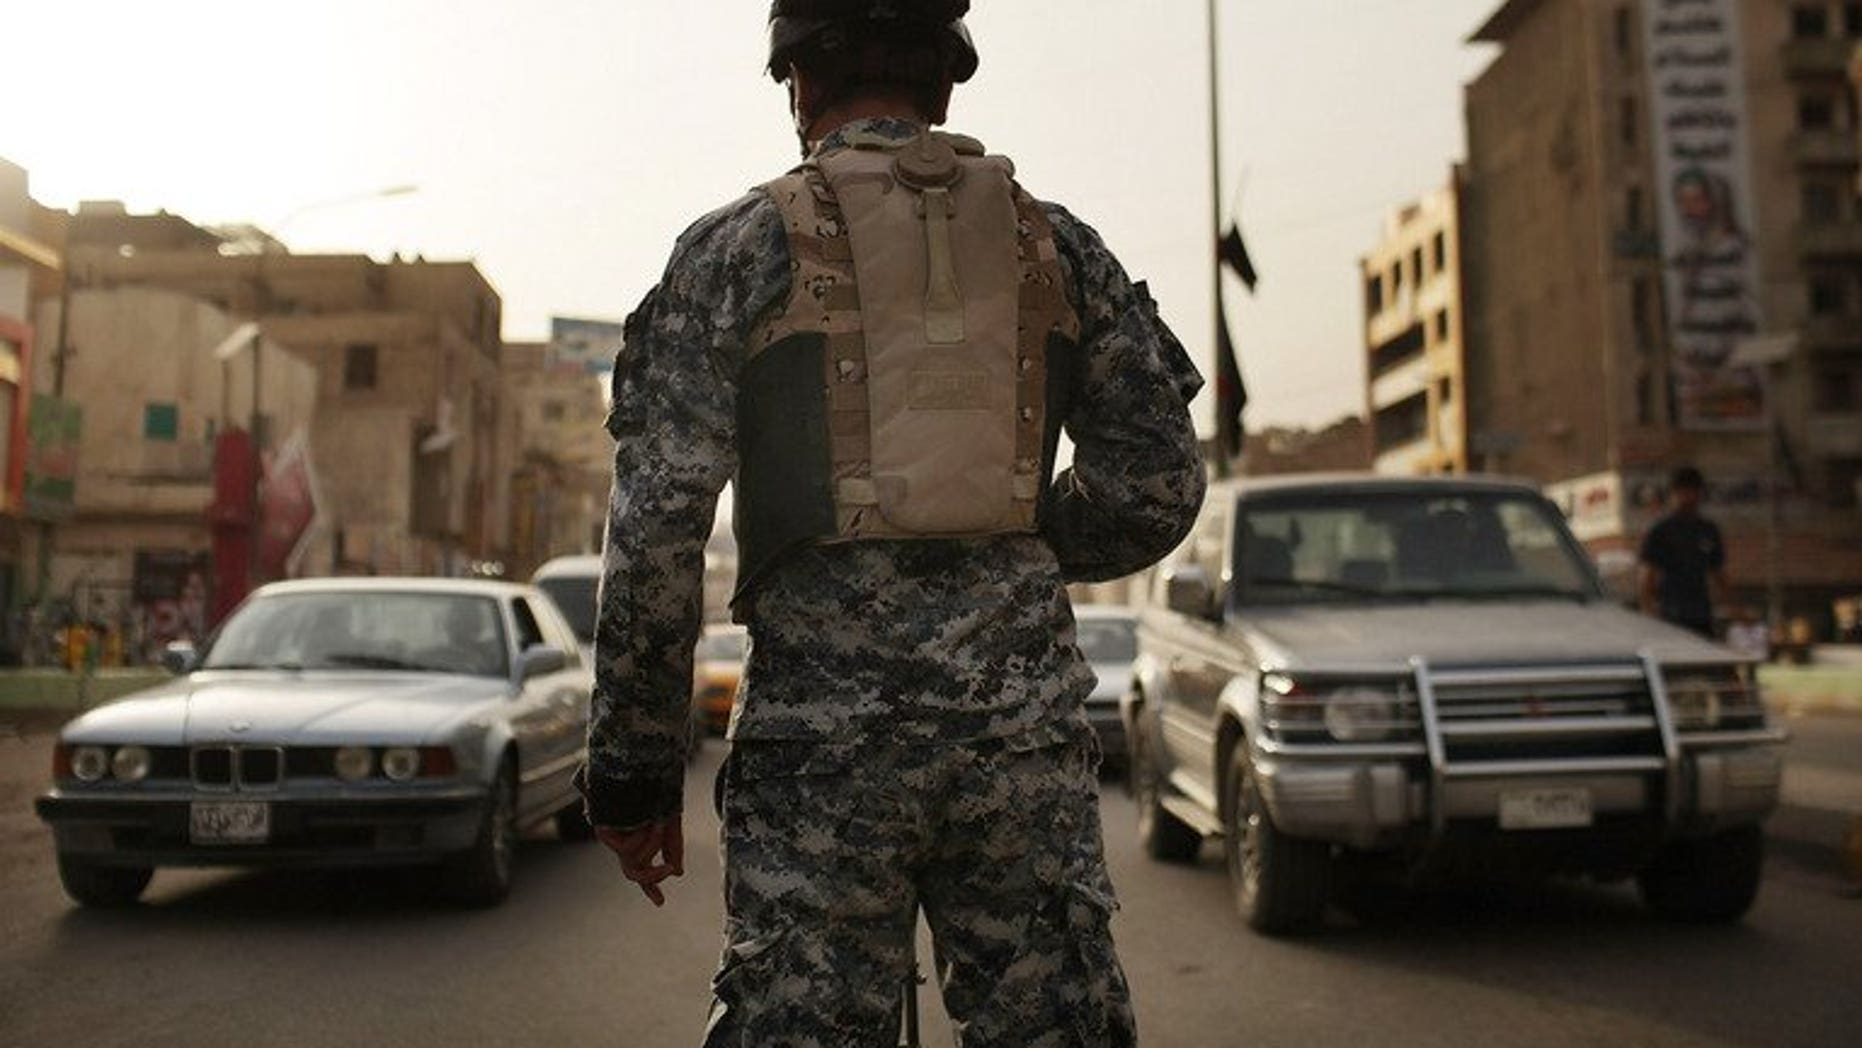 An Iraqi police officer watches cars at a checkpoint on July 20, 2011 in Baghdad. A British soldier accused of overcharging a US peace group for a security contract with the private firm he set up will be extradited to the United States, the Home Office said.